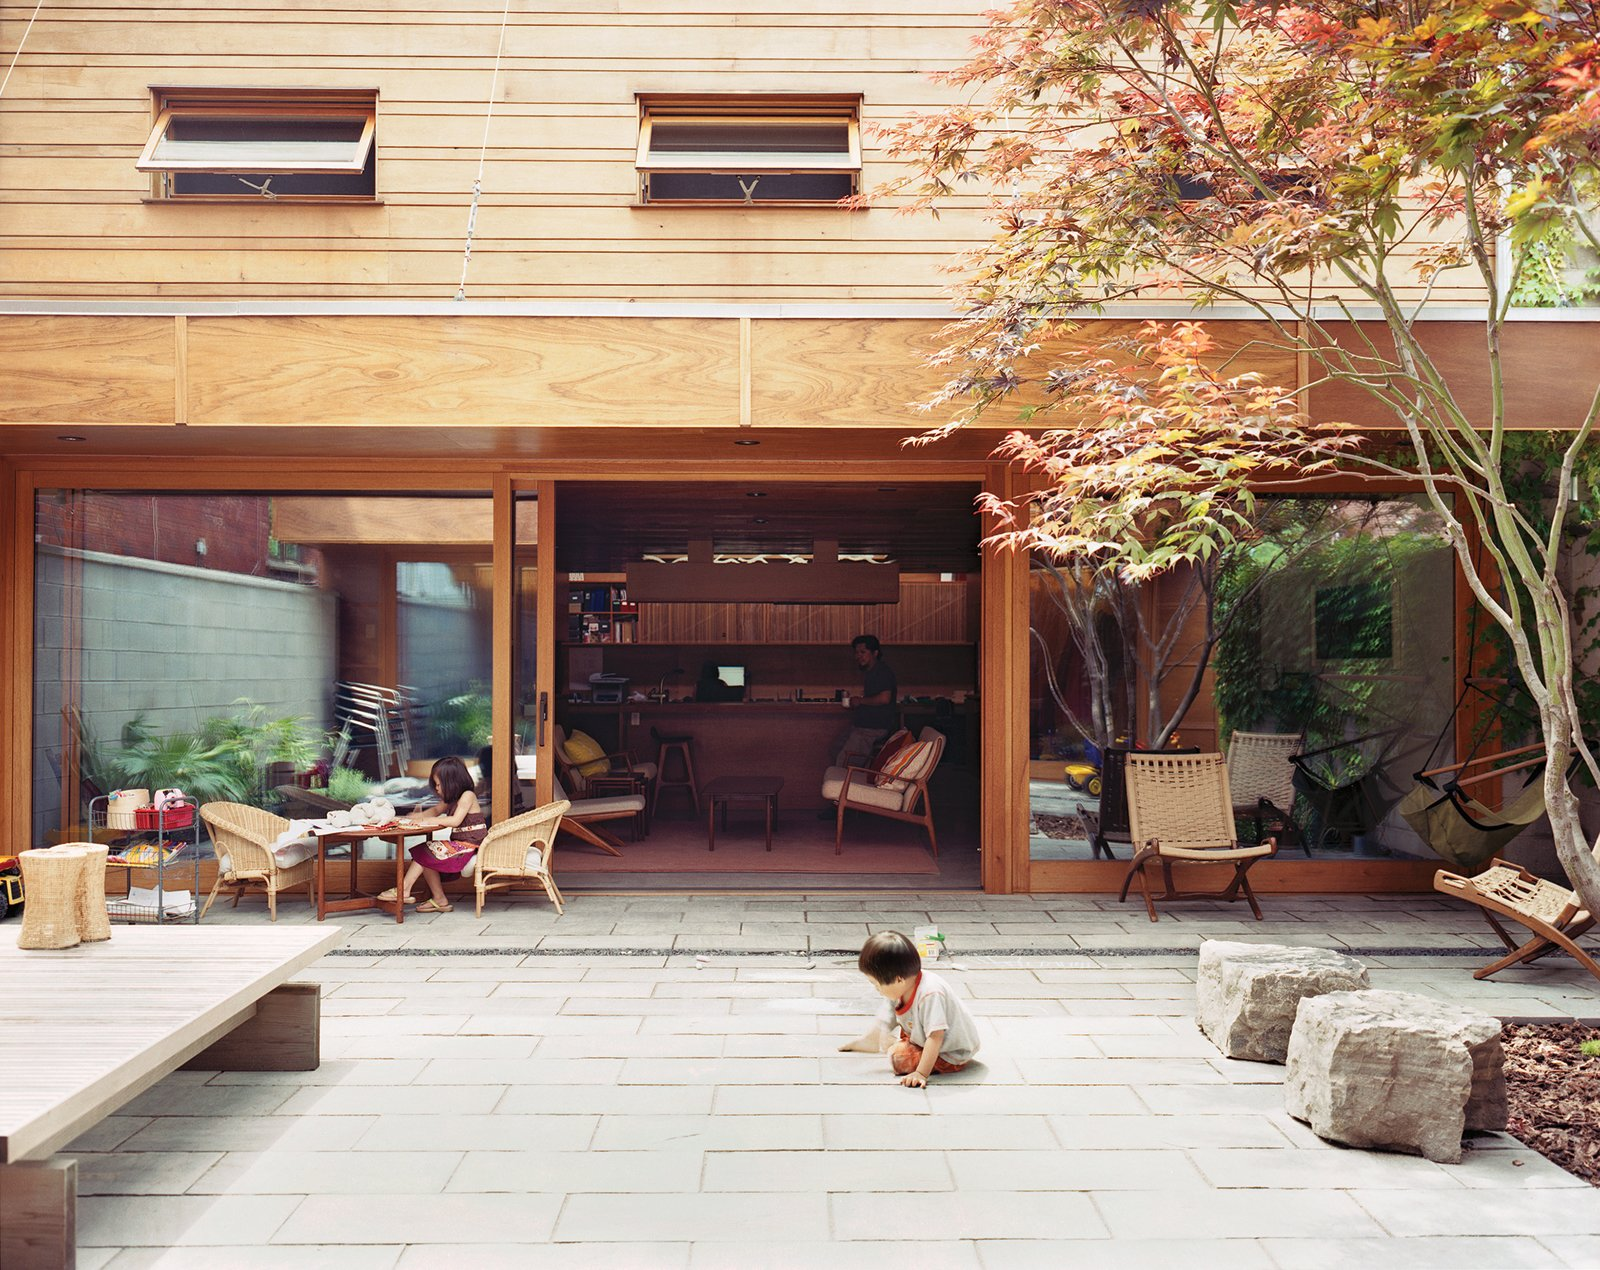 Four-year-old Ian plays in the courtyard, which is the center of family life in warmer months.  Photo 5 of 10 in 10 Outdoor Living Trends That Bring Homeowners Blissfully Close to Nature